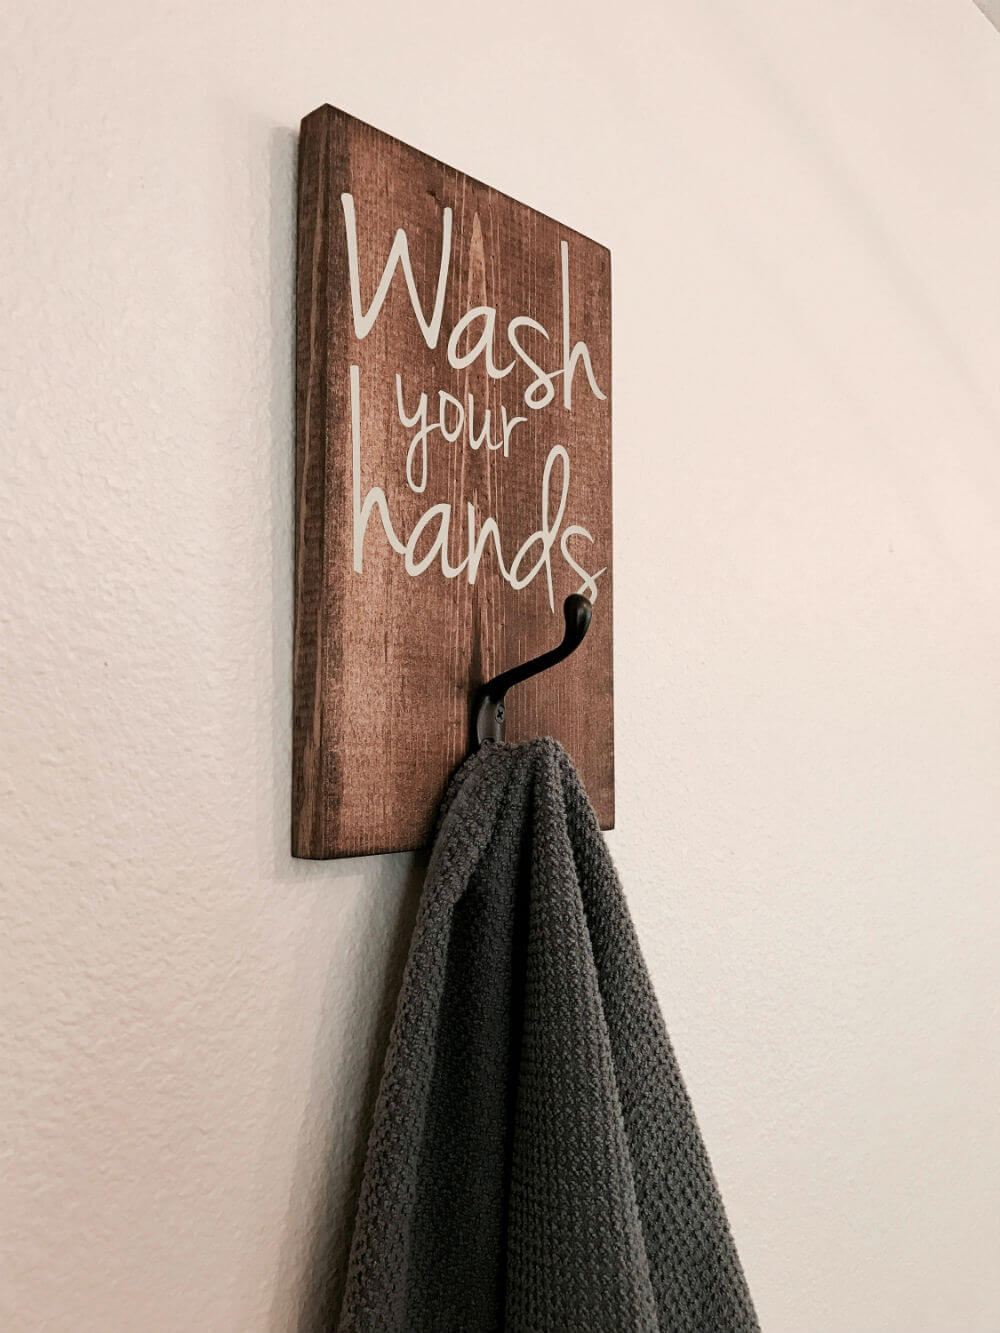 Red roan sings wall hooks https://homebnc.com/best-etsy-bathroom-accessories-ideas-to-buy/